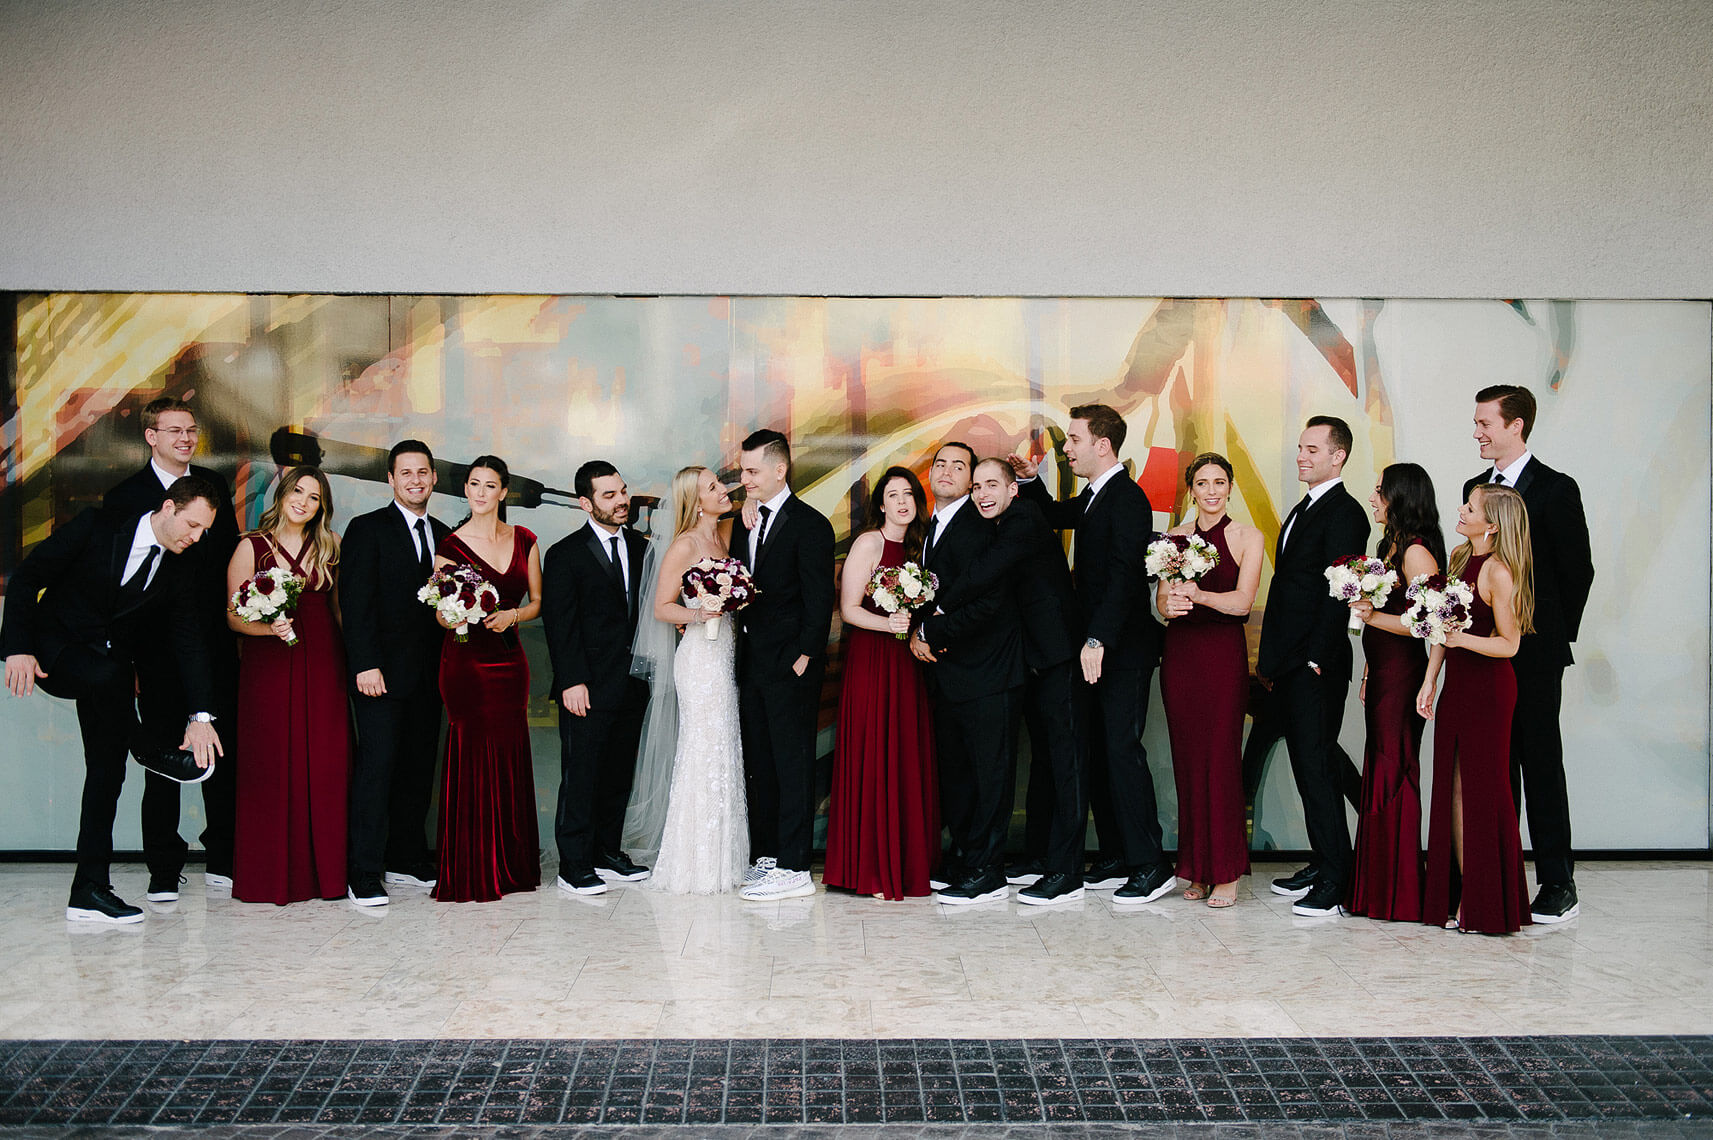 bridal party pose in front of large window art at west hollywood hotel wedding